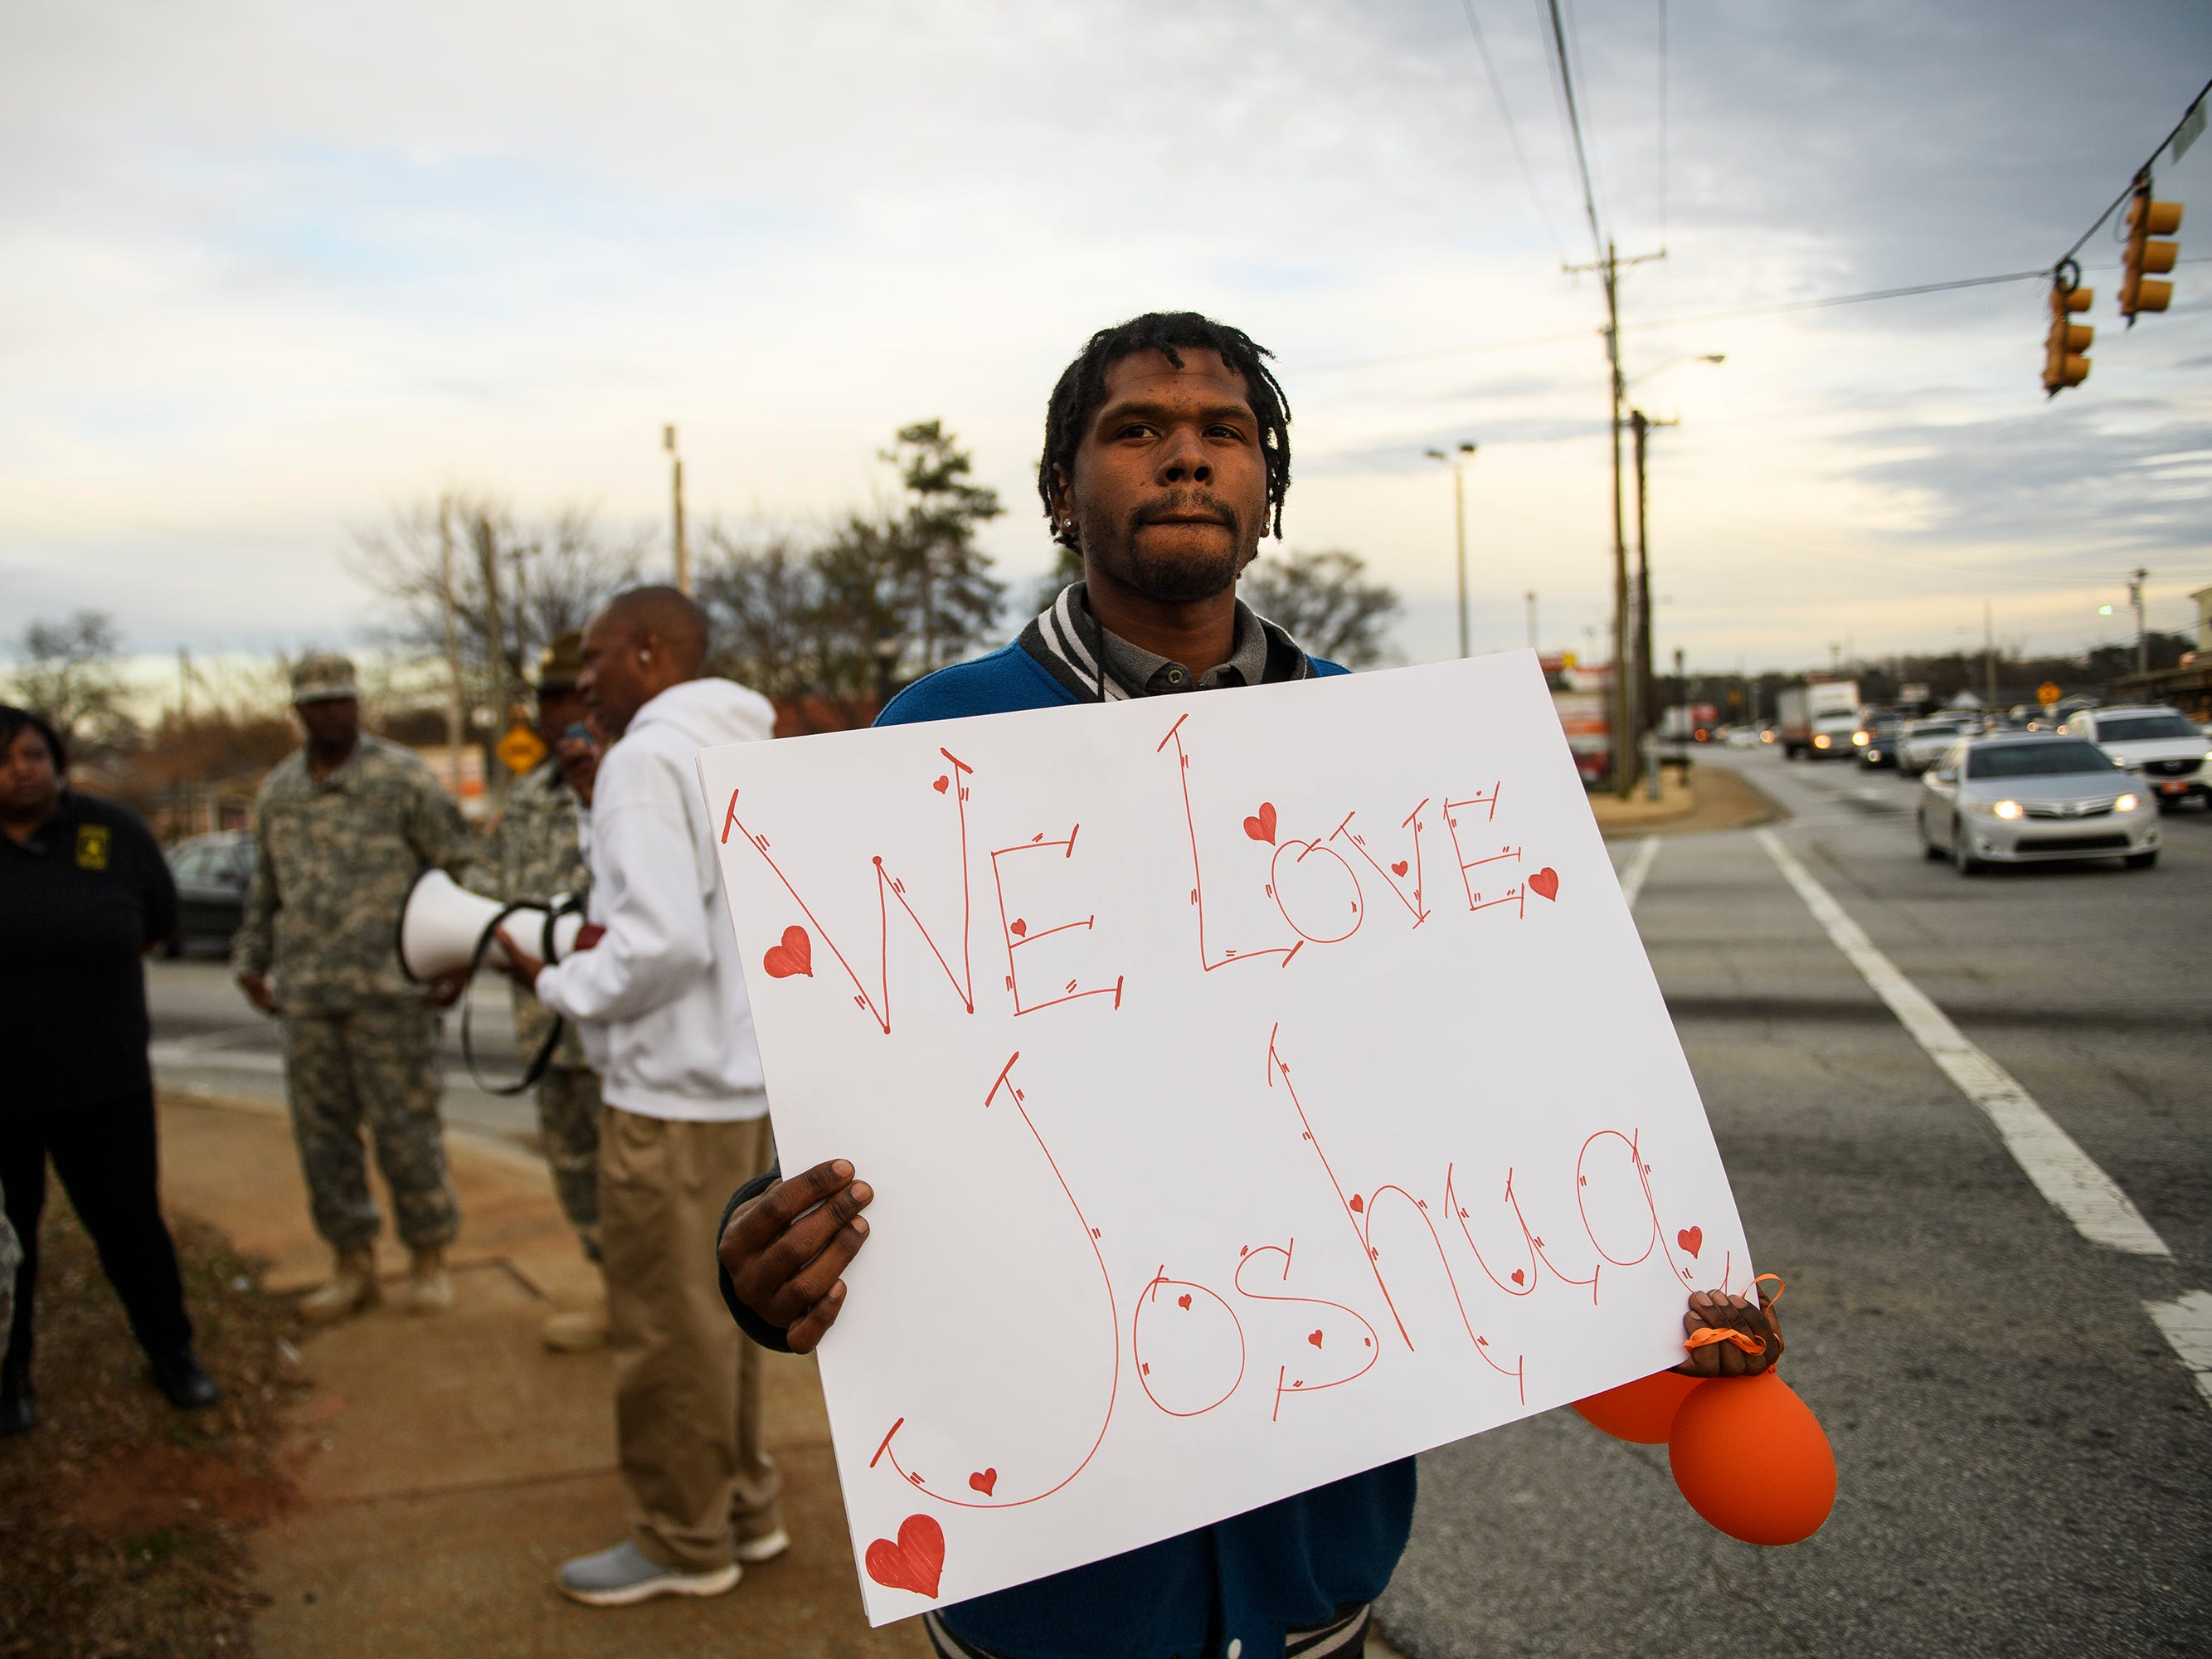 Thomas Young holds a sign during a balloon release in honor of Joshua Meeks on East Butler Road in Mauldin on Feb. 4, 2019.